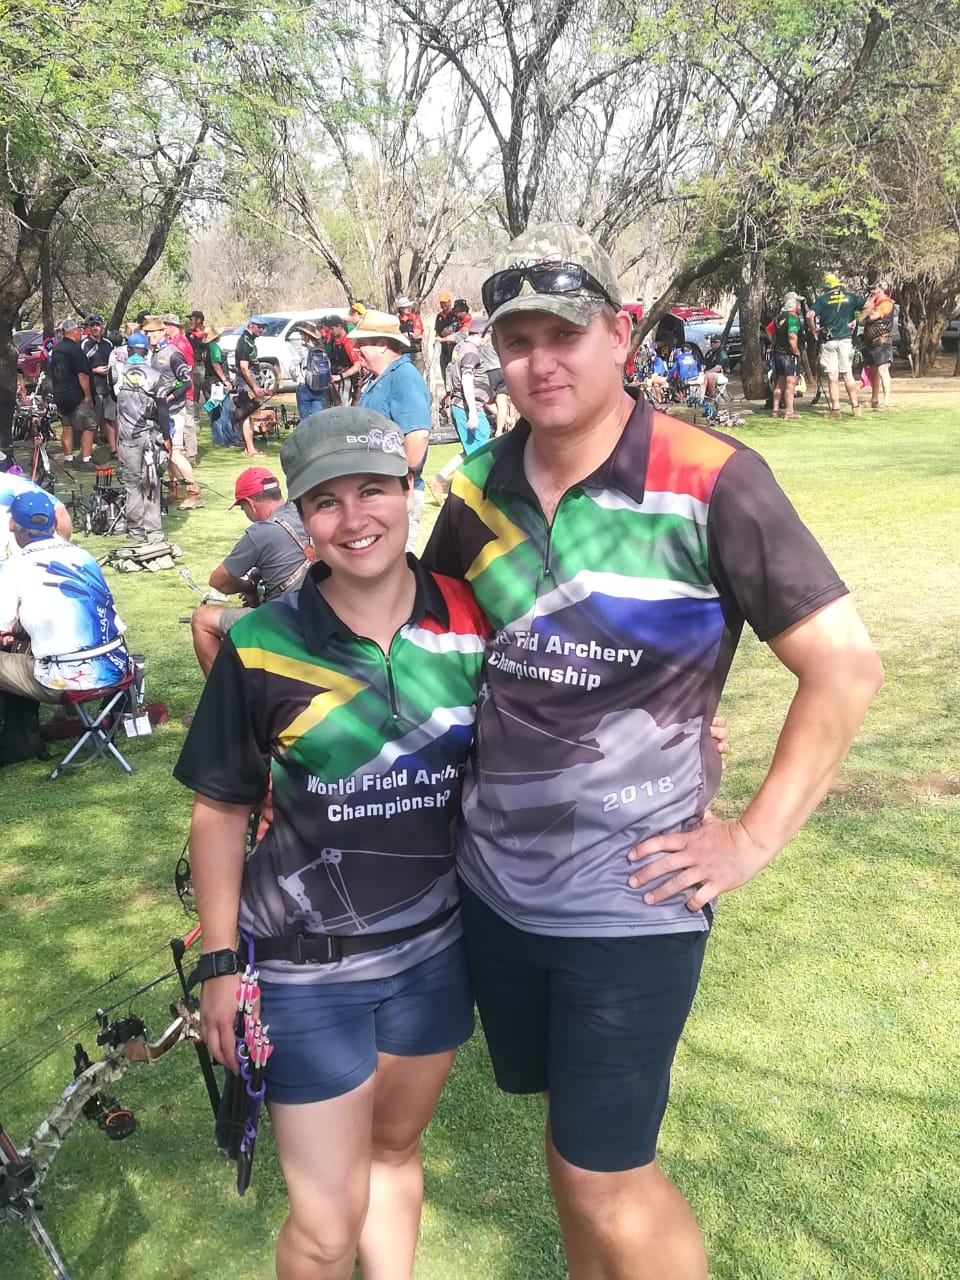 Polygraph examiners representing South Africa at the World Field Archery Championships 2018